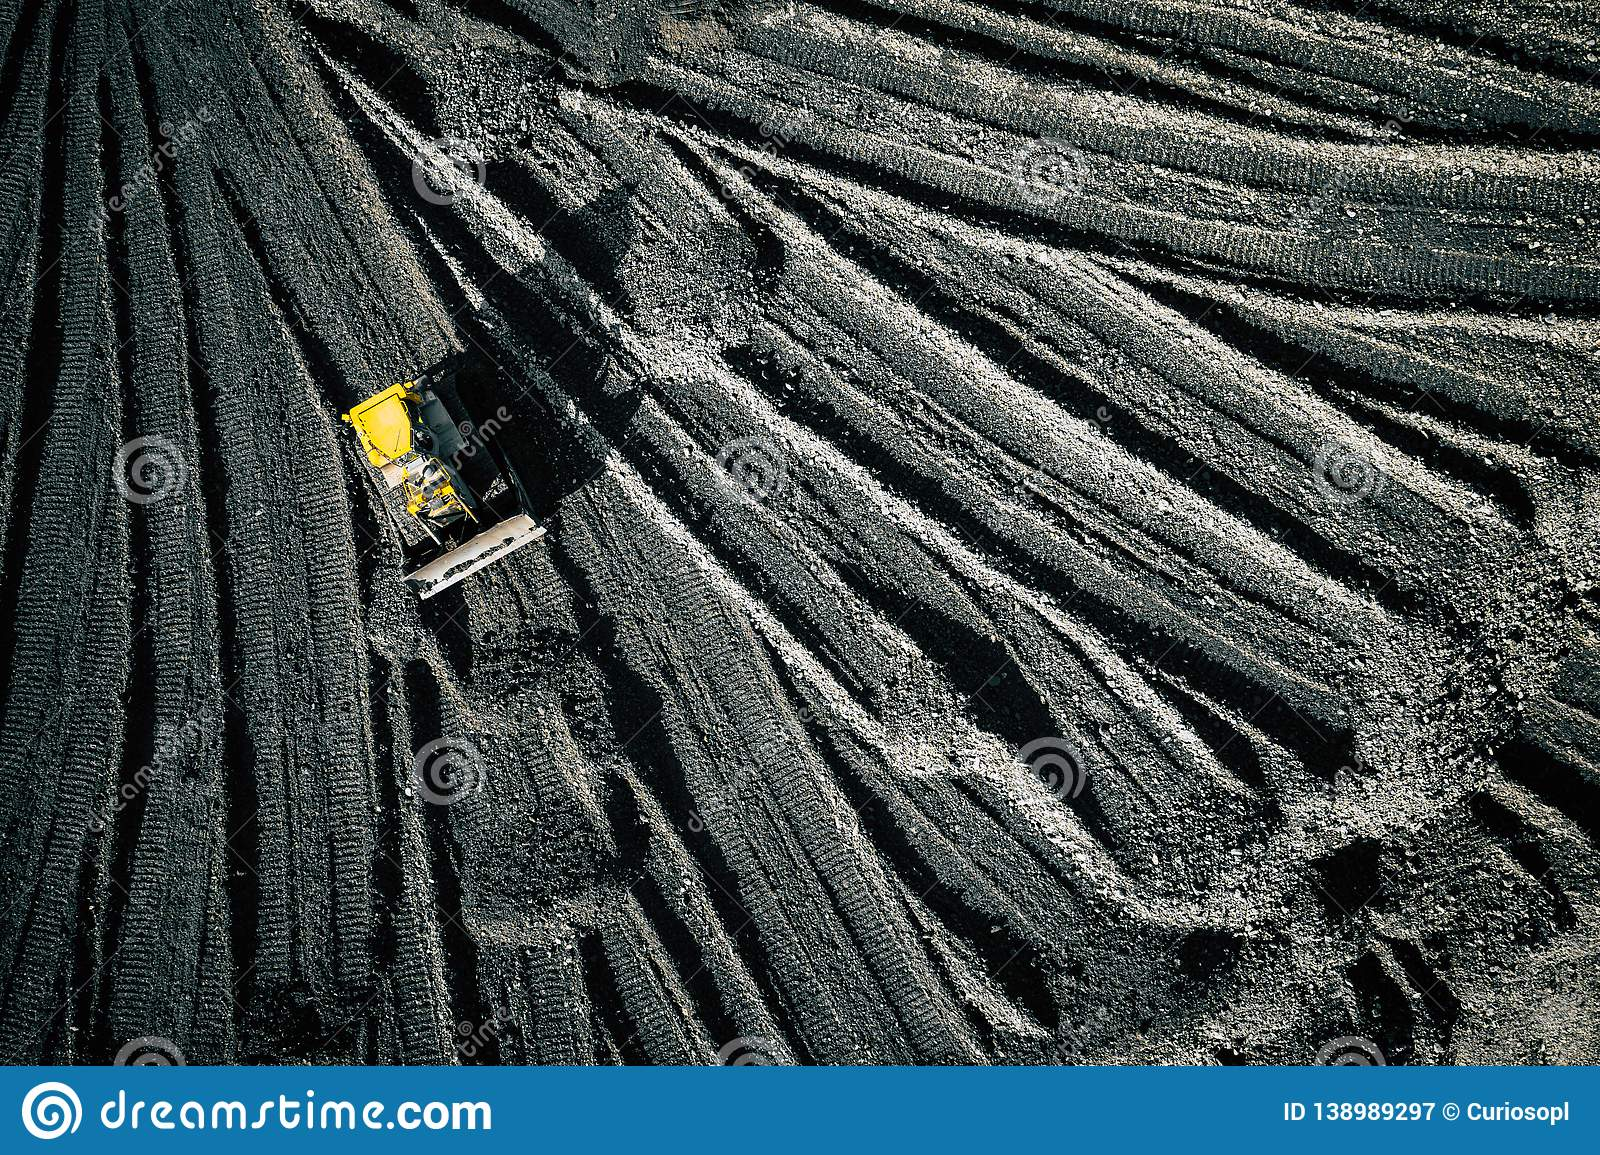 Open pit mine. Aerial view of extractive industry for coal. Top view. Photo captured with drone